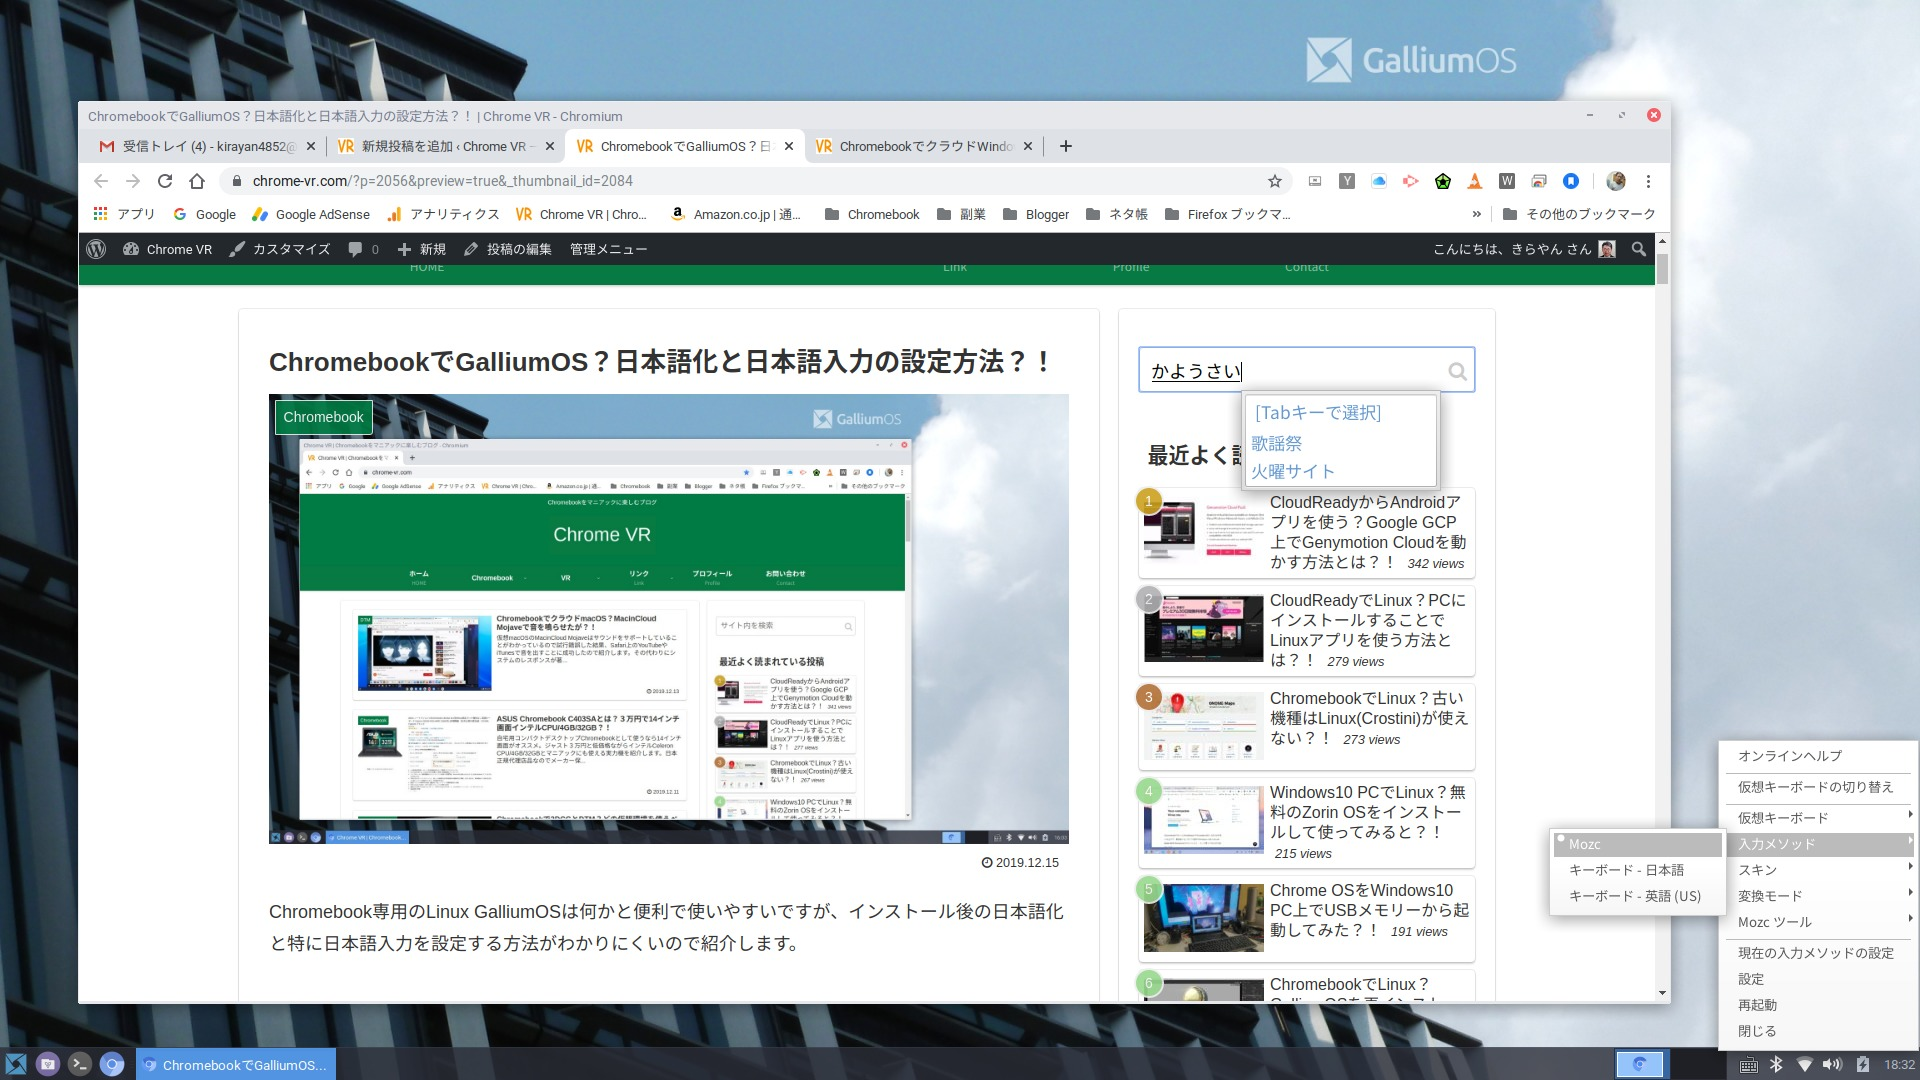 Chromebook GalliumOS 日本語化 日本語入力